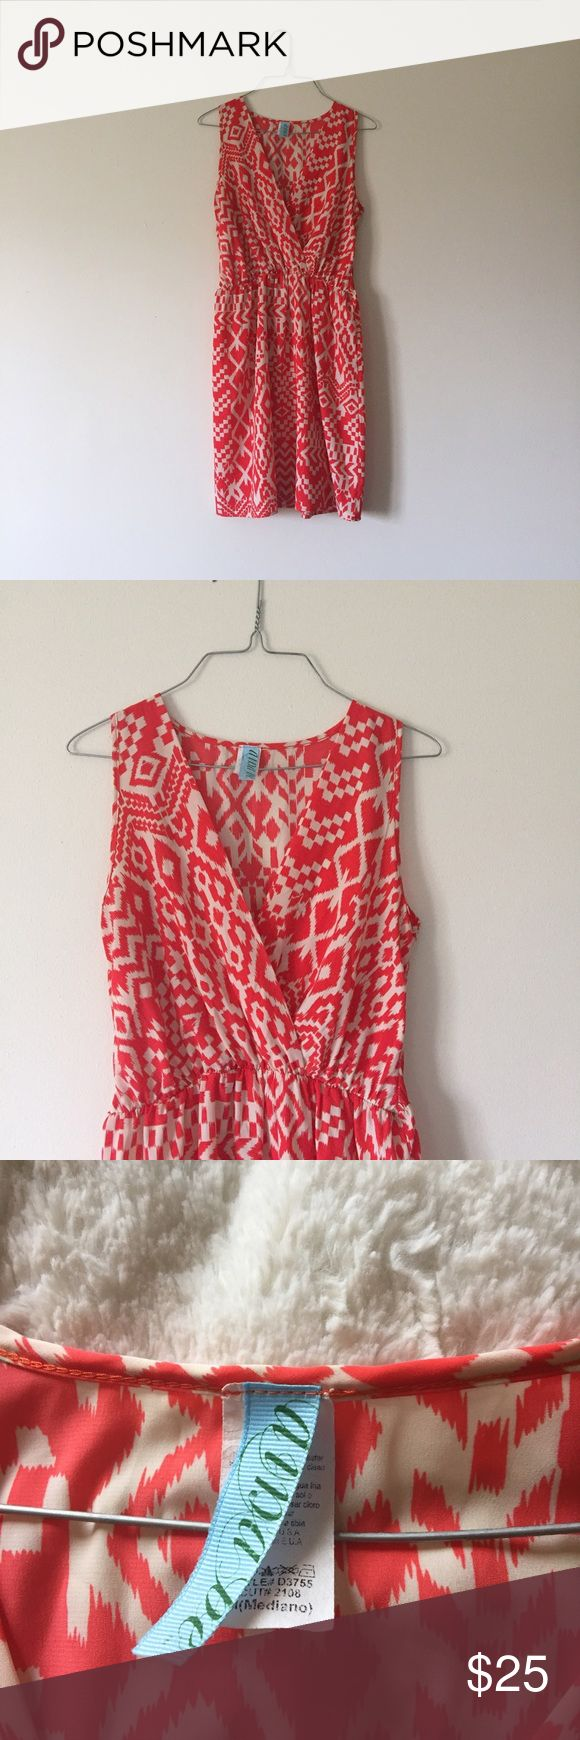 Gorgeous aztec surplice dress Beautiful aztec surplice front sleeveless dress from Francesca's. Very light and comfy for any occasion with a statement necklace and wedges. In great condition Francesca's Collections Dresses